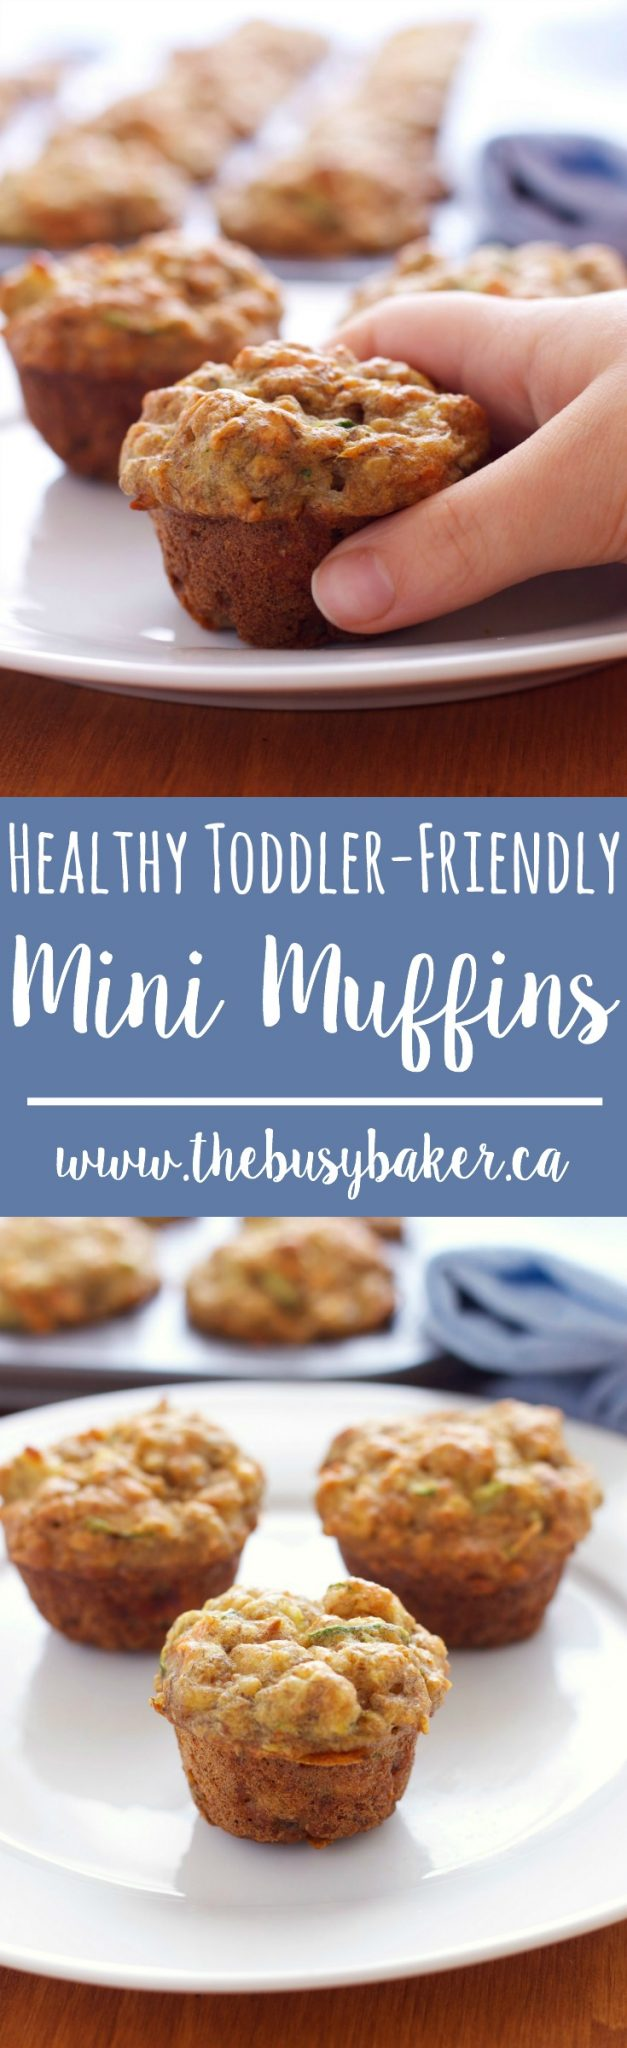 These Healthy Toddler Friendly Mini Muffins are refined-sugar free and packed with fruit and vegetables! Recipe from thebusybaker.ca! #muffins #breakfast #brunch #snack #healthy #toddler via @busybakerblog